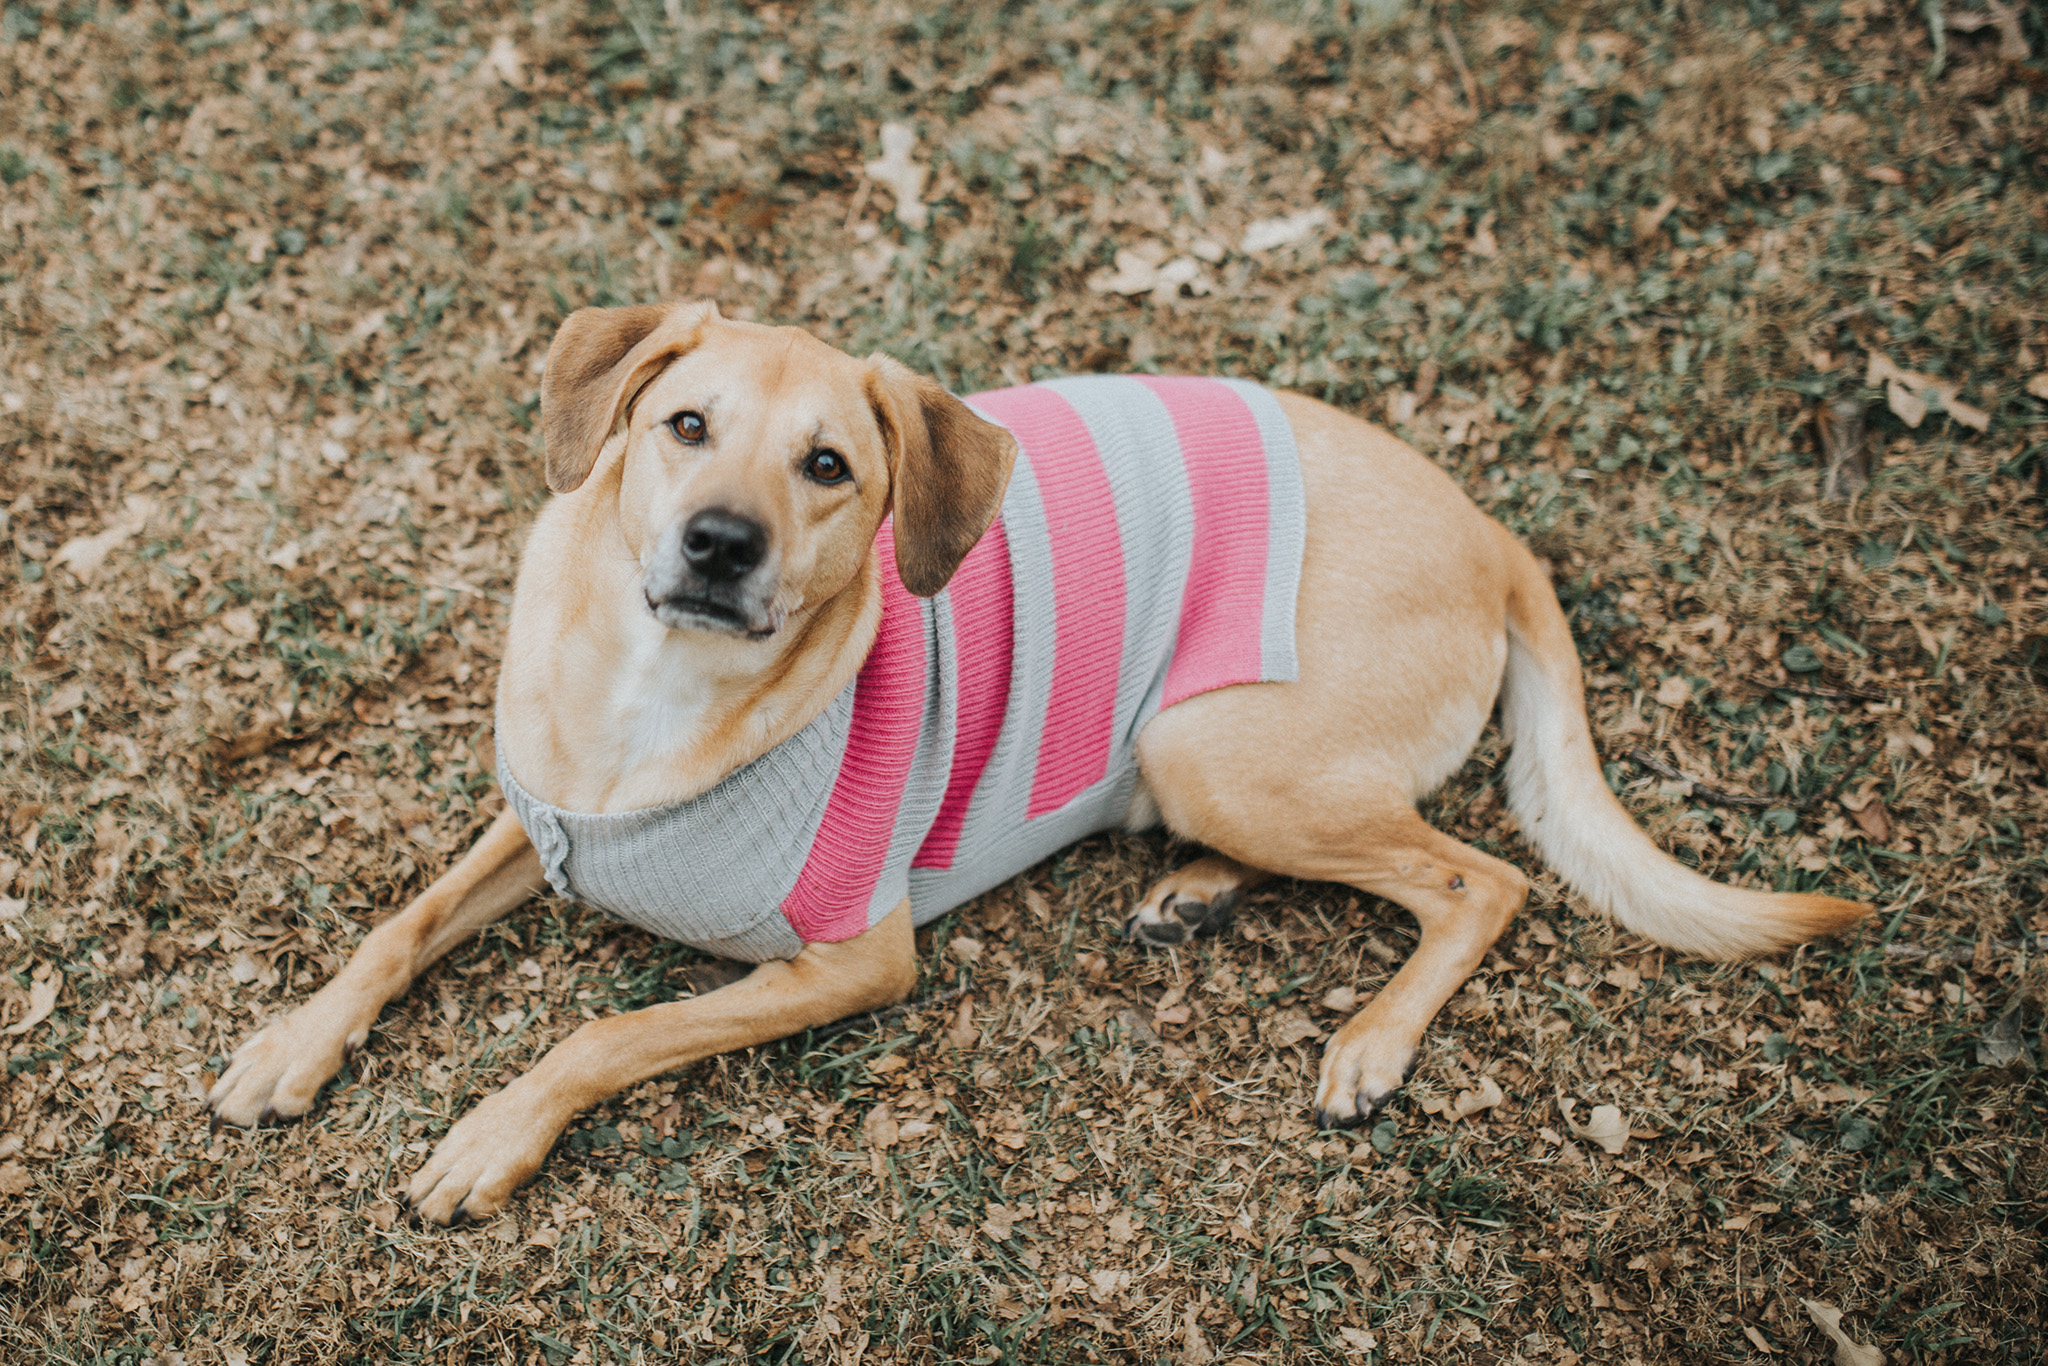 December 27: It was cold for all of 30 seconds, so of course Darby needed to sport a sweater.